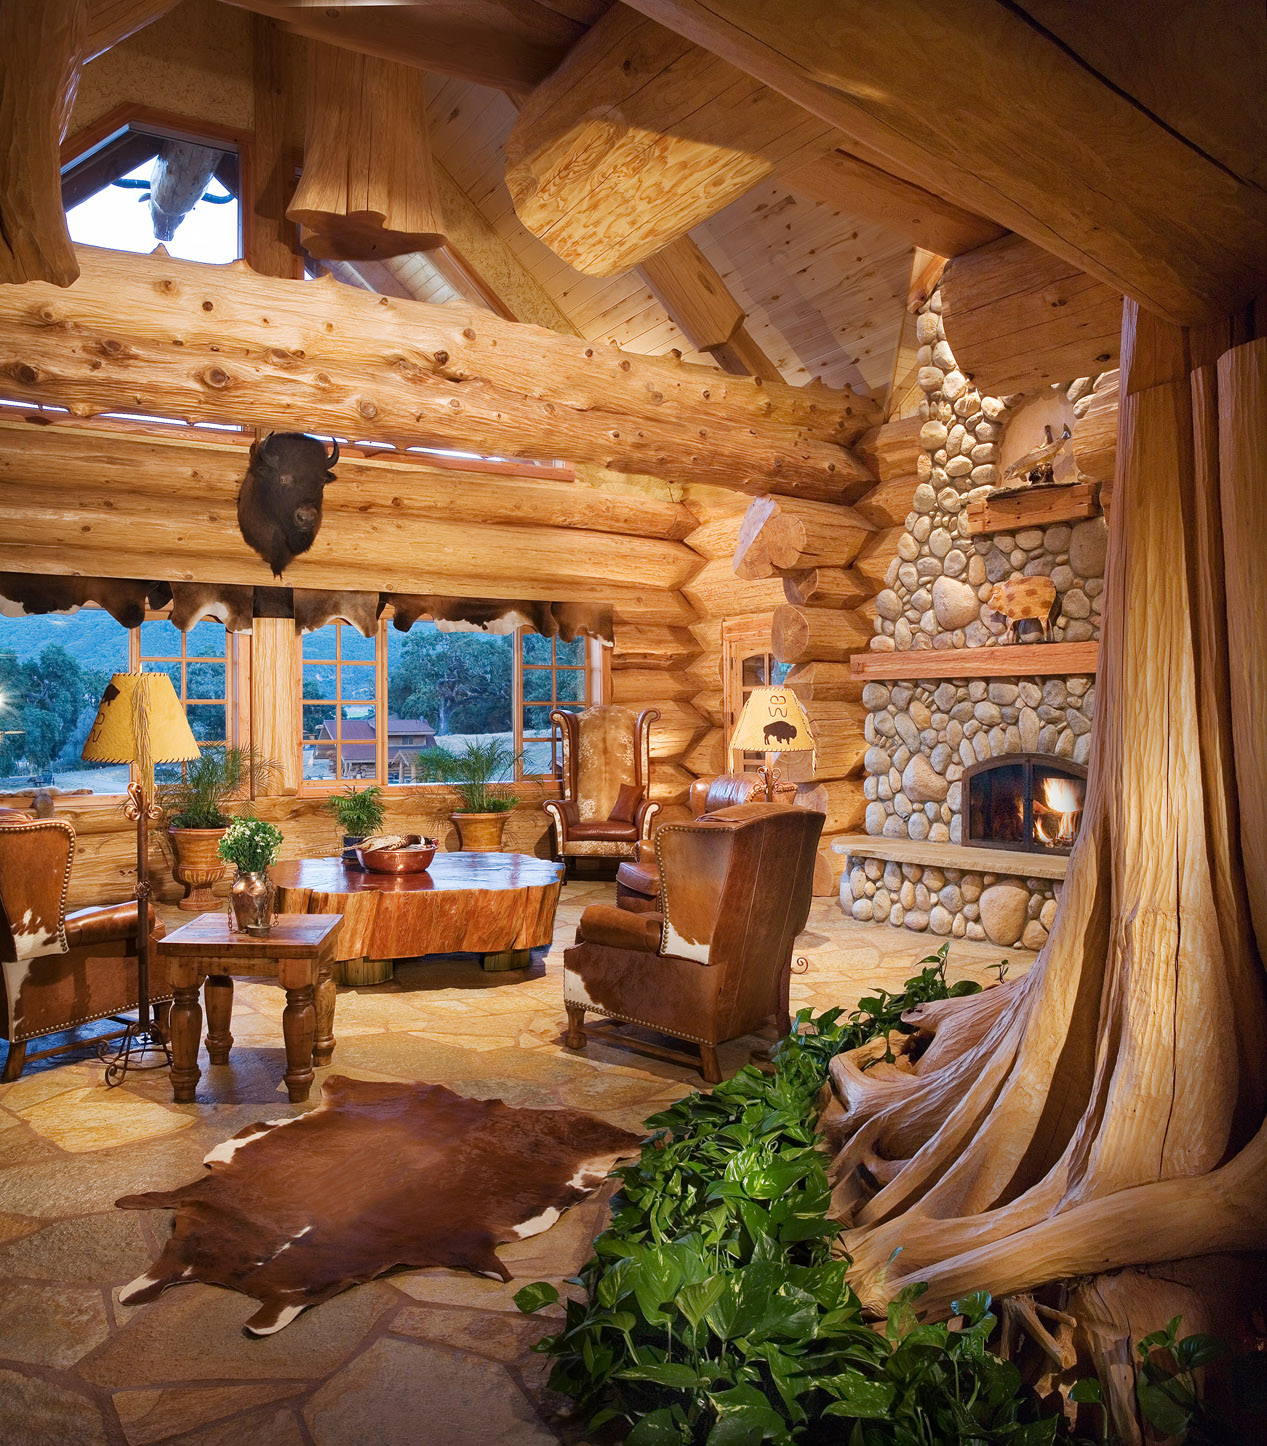 Maison En Bois De Luxe - Pioneer Log Homes& Log Cabins The Timber Kings